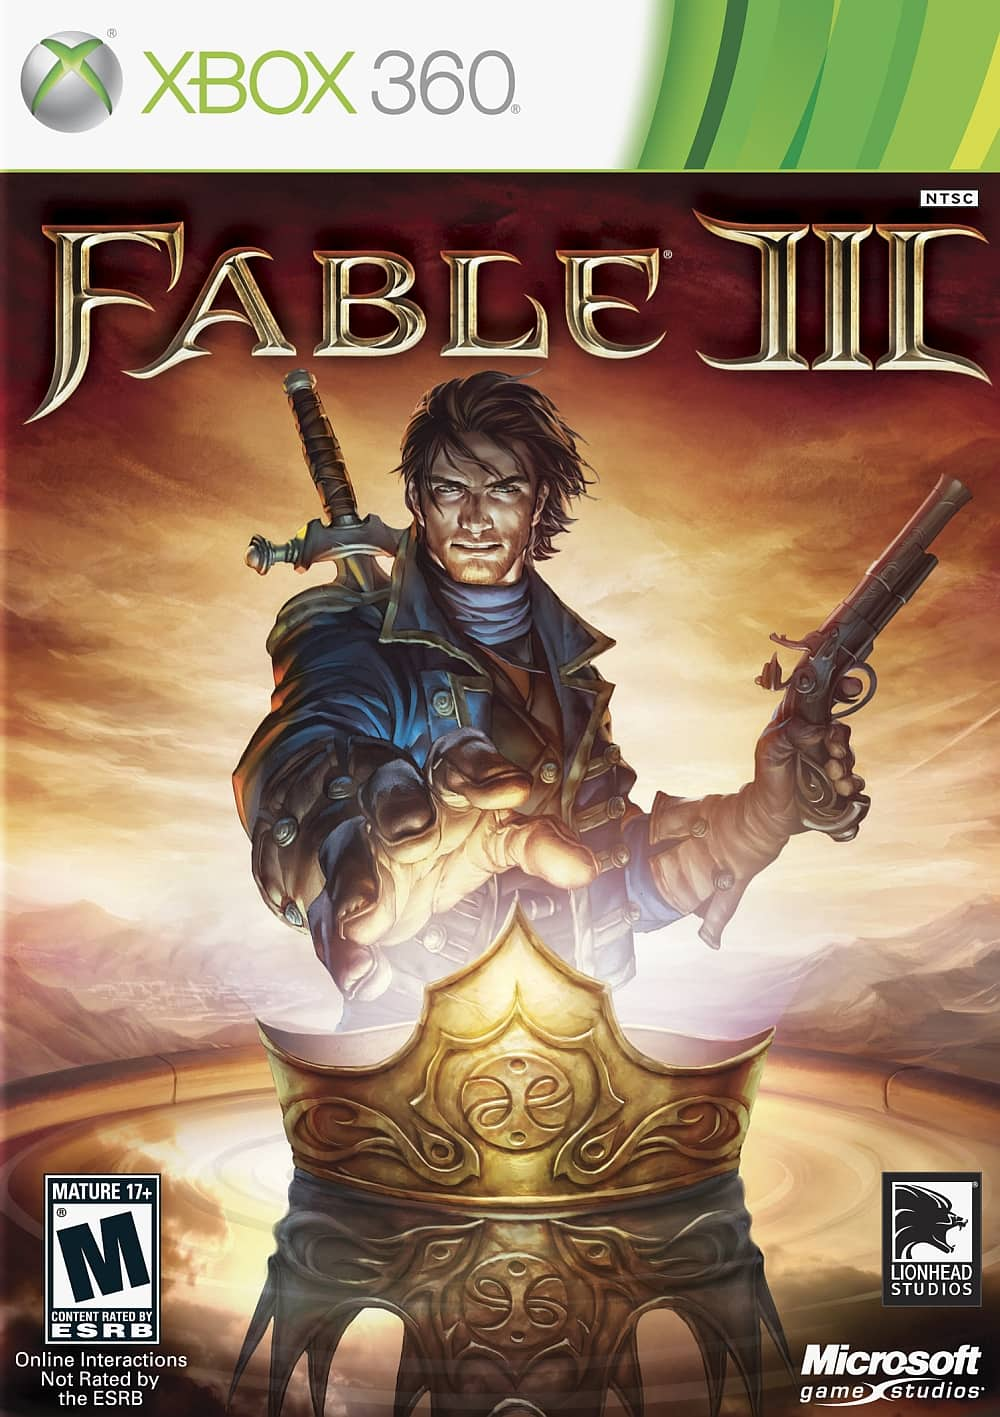 Fable III's two paid DLCs, Traitor's Keep Quest Pack and Dog Breed Set (~$10), are currently FREE on Xbox marketplace (Xbox 360 / Xbox One)